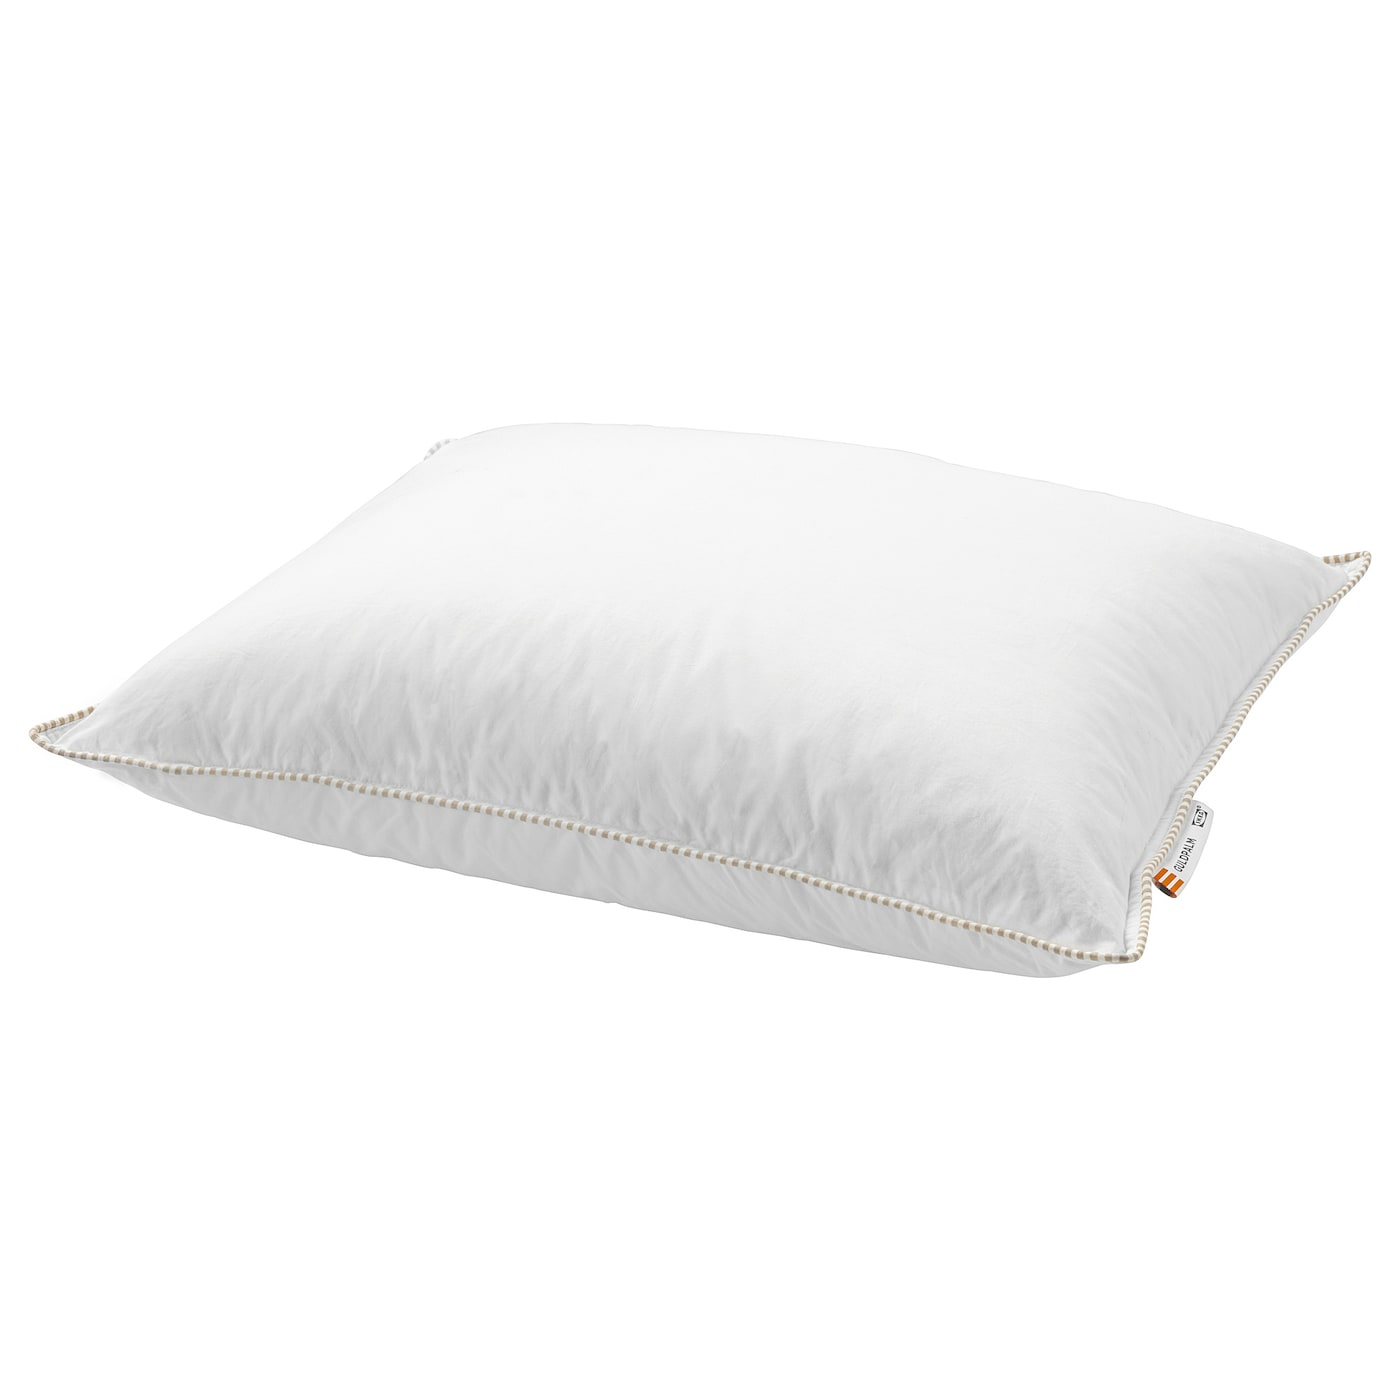 IKEA GULDPALM pillow, firmer A firm pillow in soft cotton, filled with duck down and feathers.